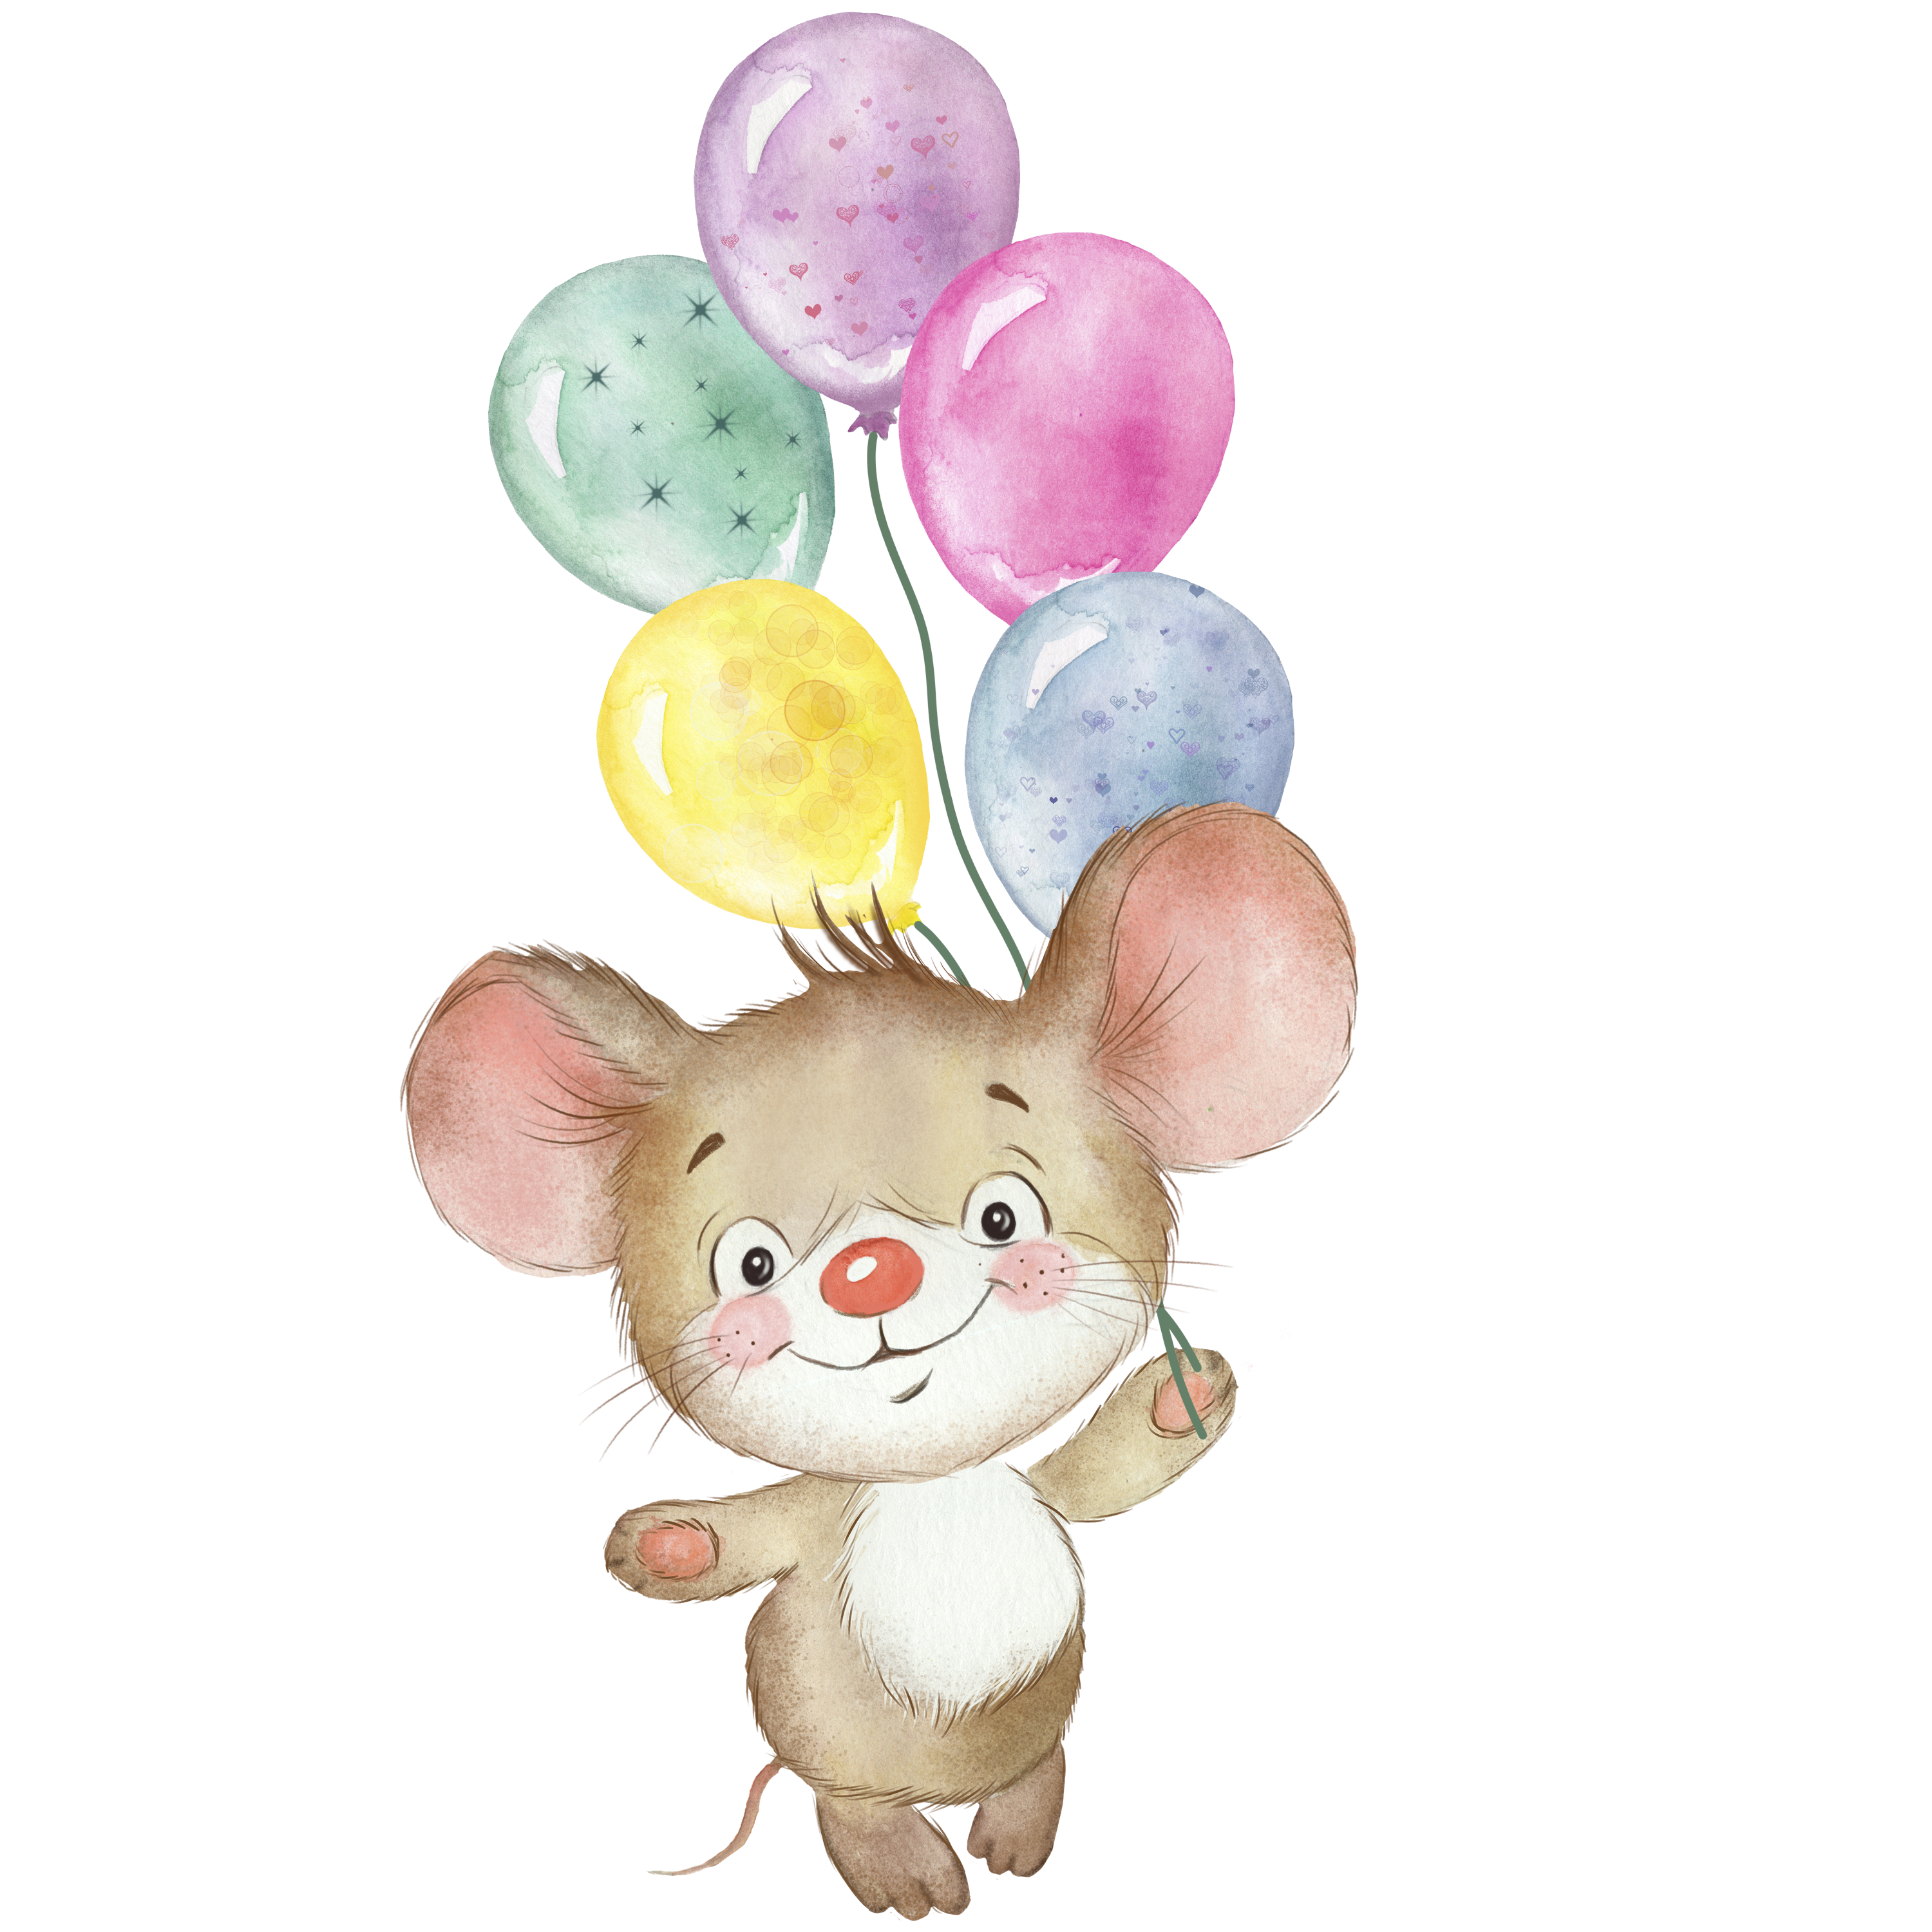 Mouse Watercolor Clipartgreeting Card Baby Shower Birthday Etsy In 2021 Cute Mouse Mouse Illustration Funny Mouse